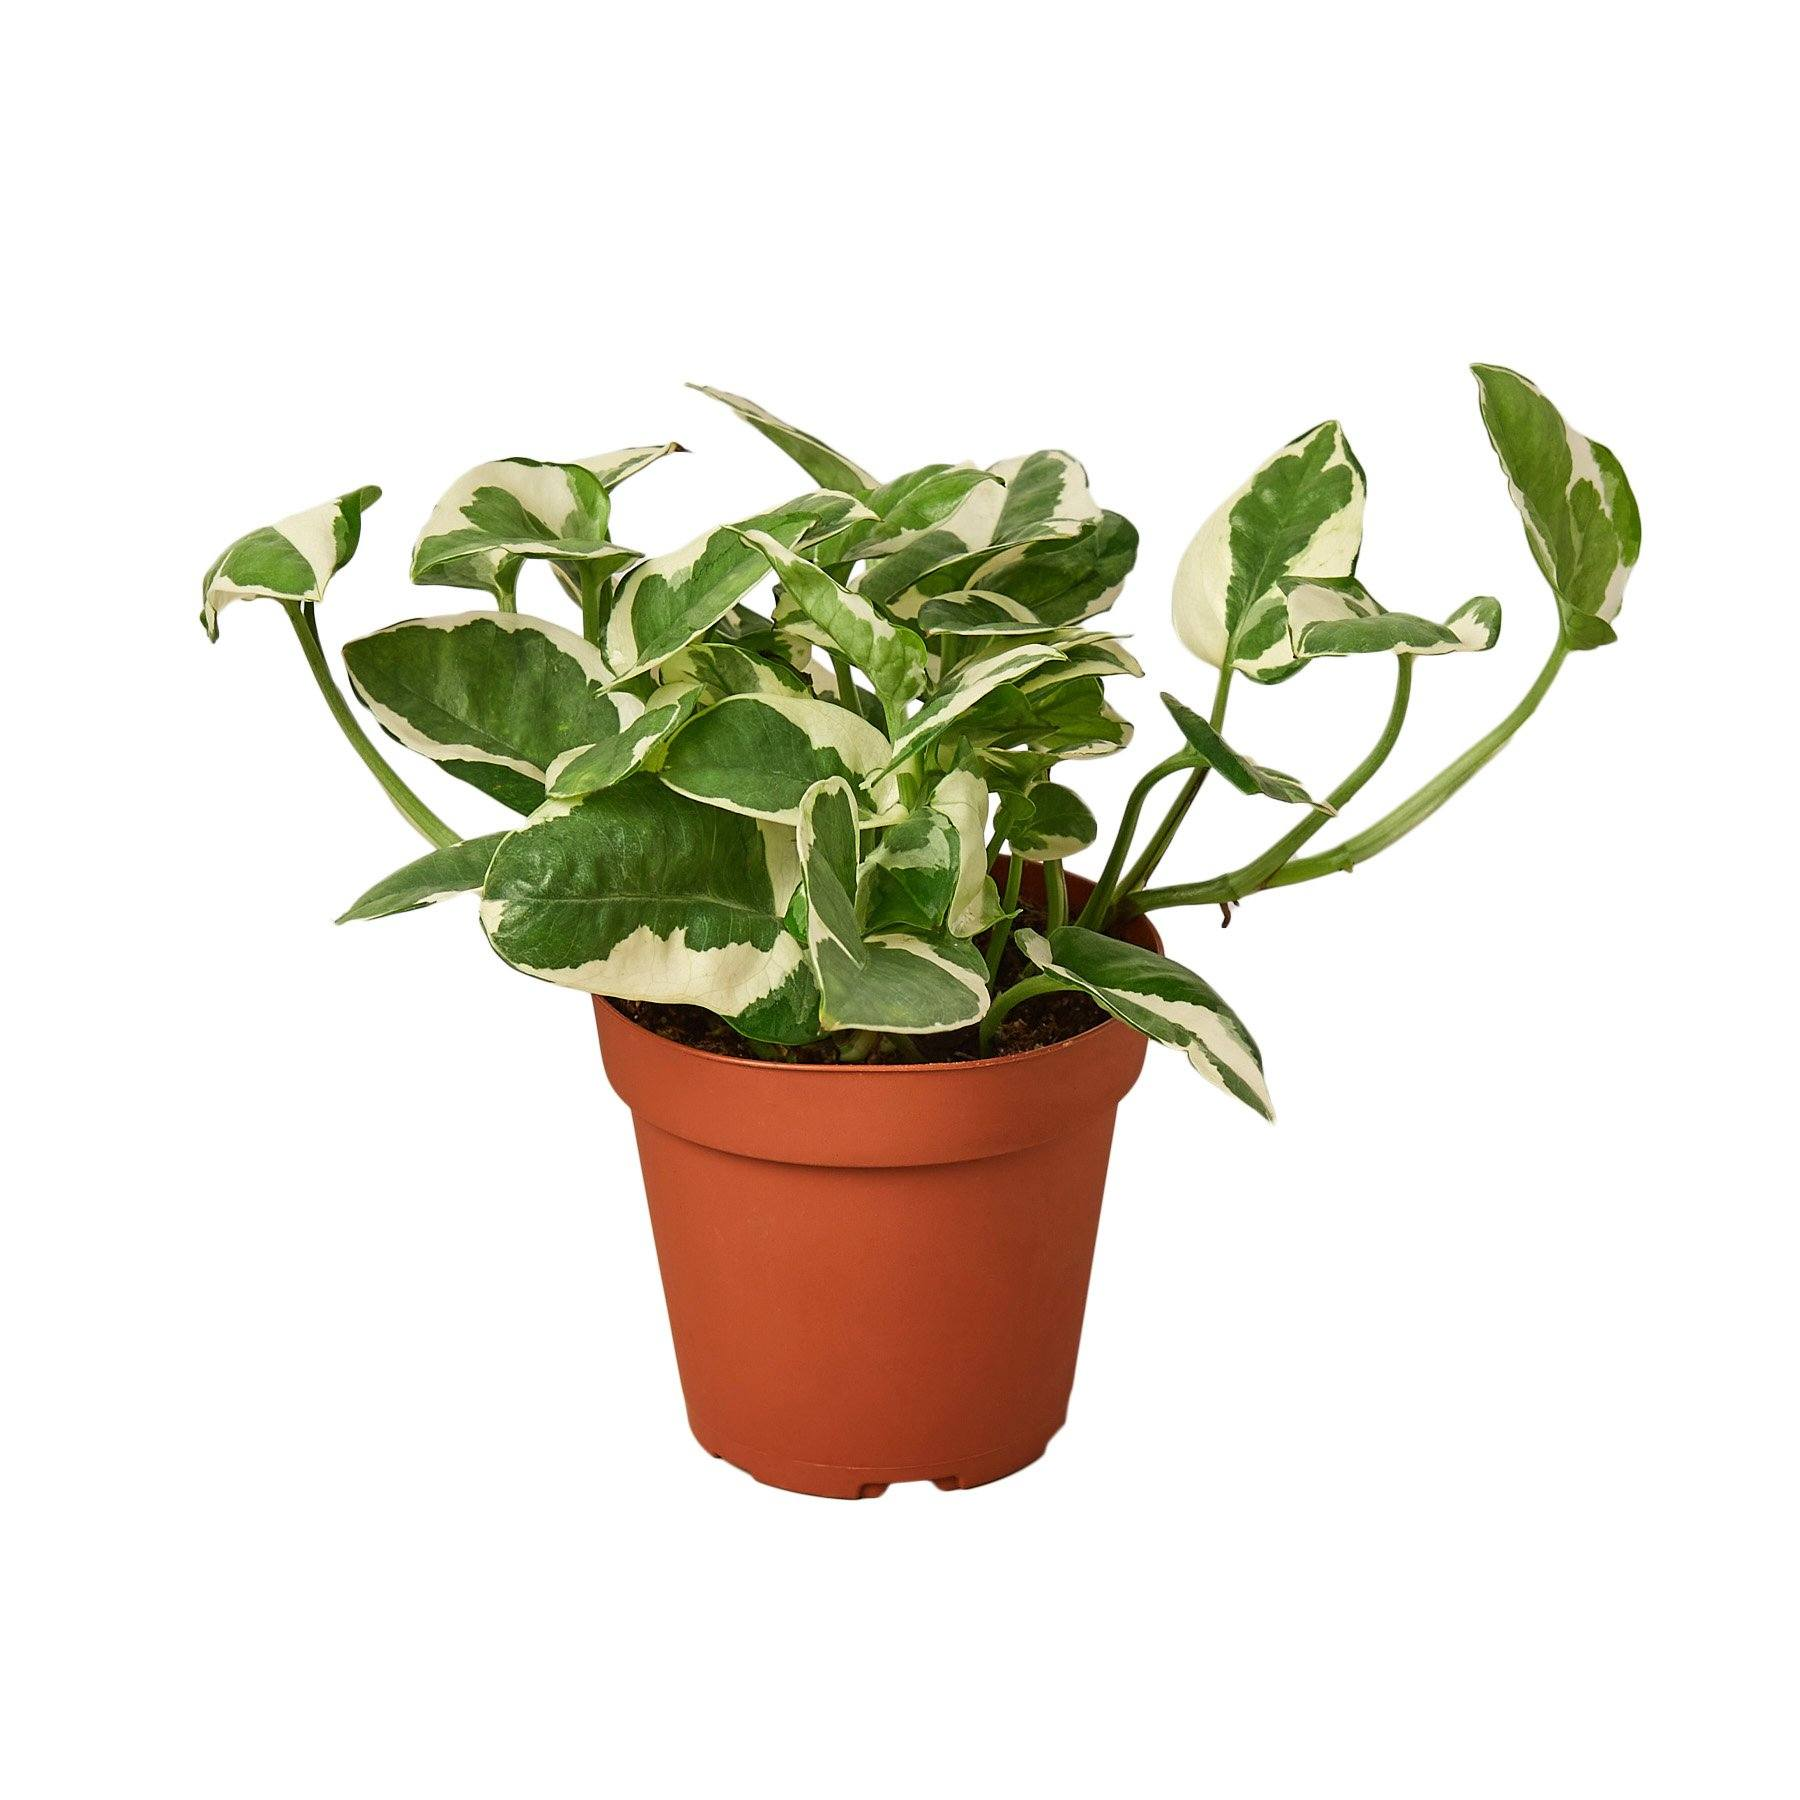 Pothos 'N'joy' Indoor Houseplant-SproutSouth-Indoor Plants